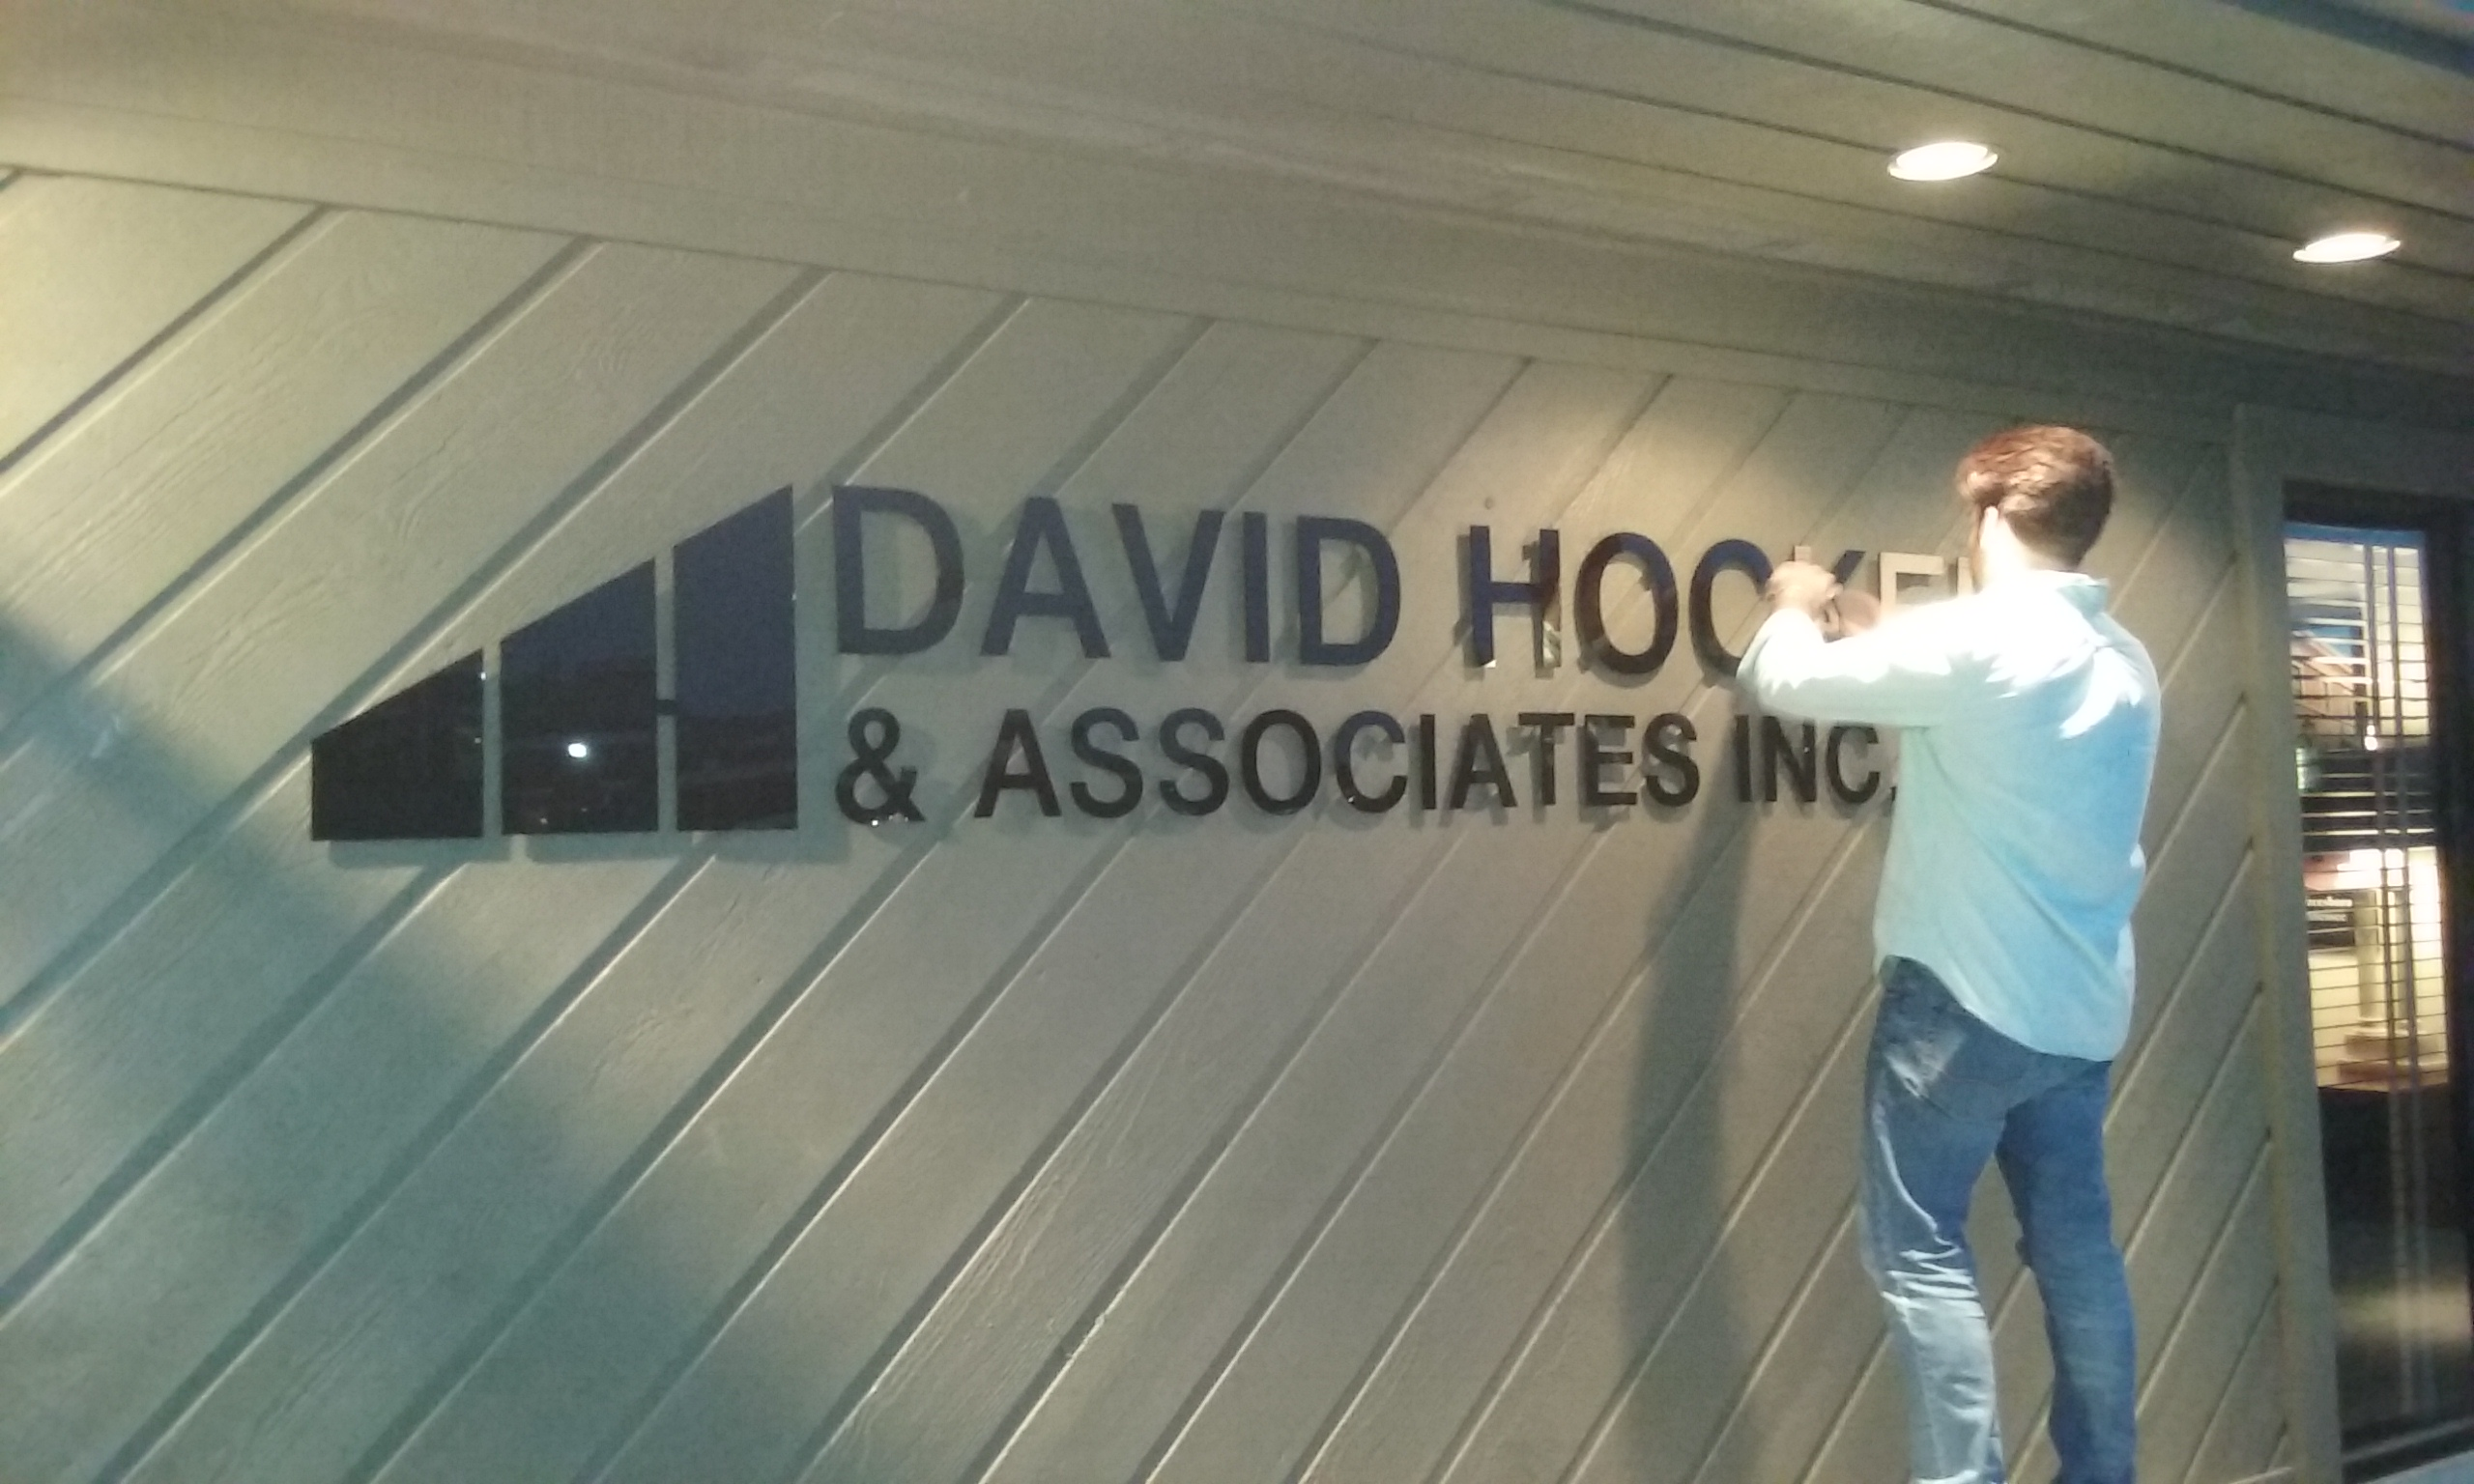 We finished this lettering for david hocker associates inc last week